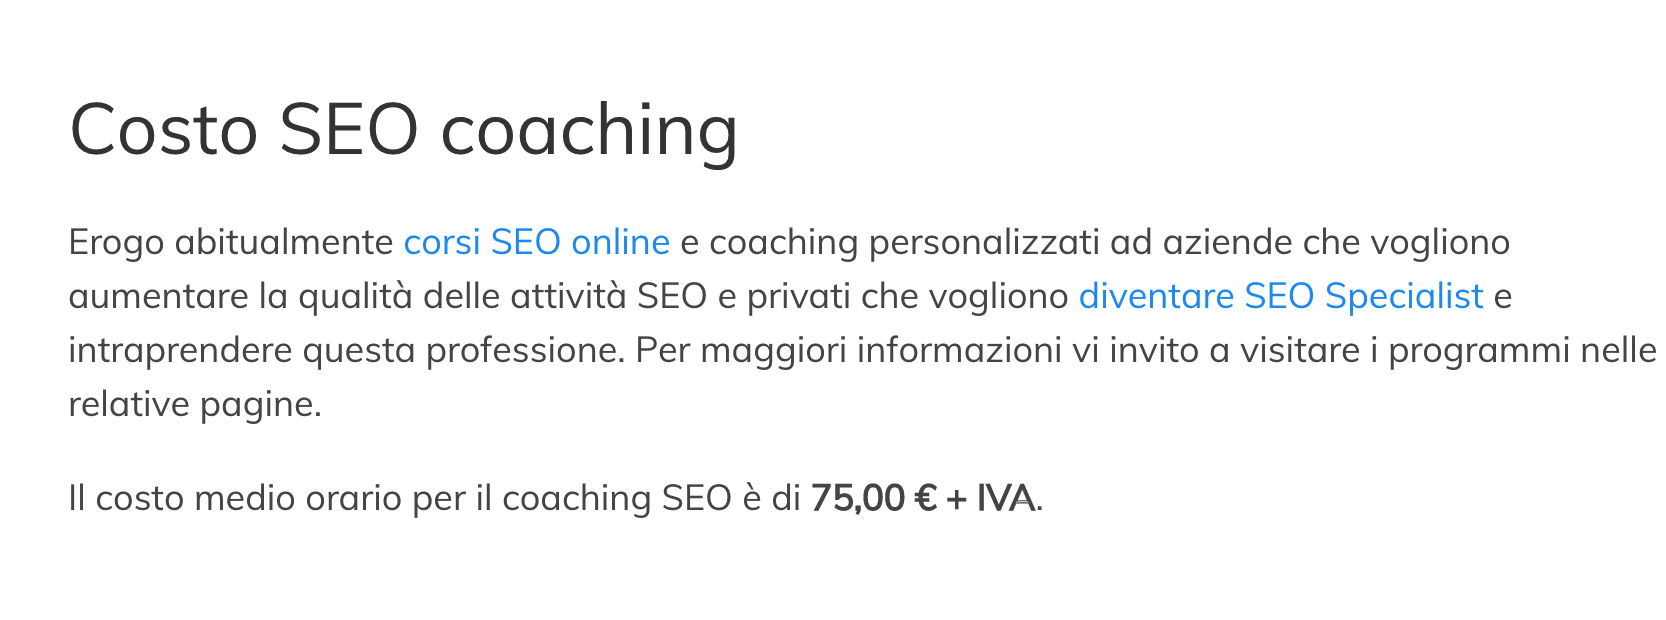 costo corso SEO avanzato e web marketing Bari